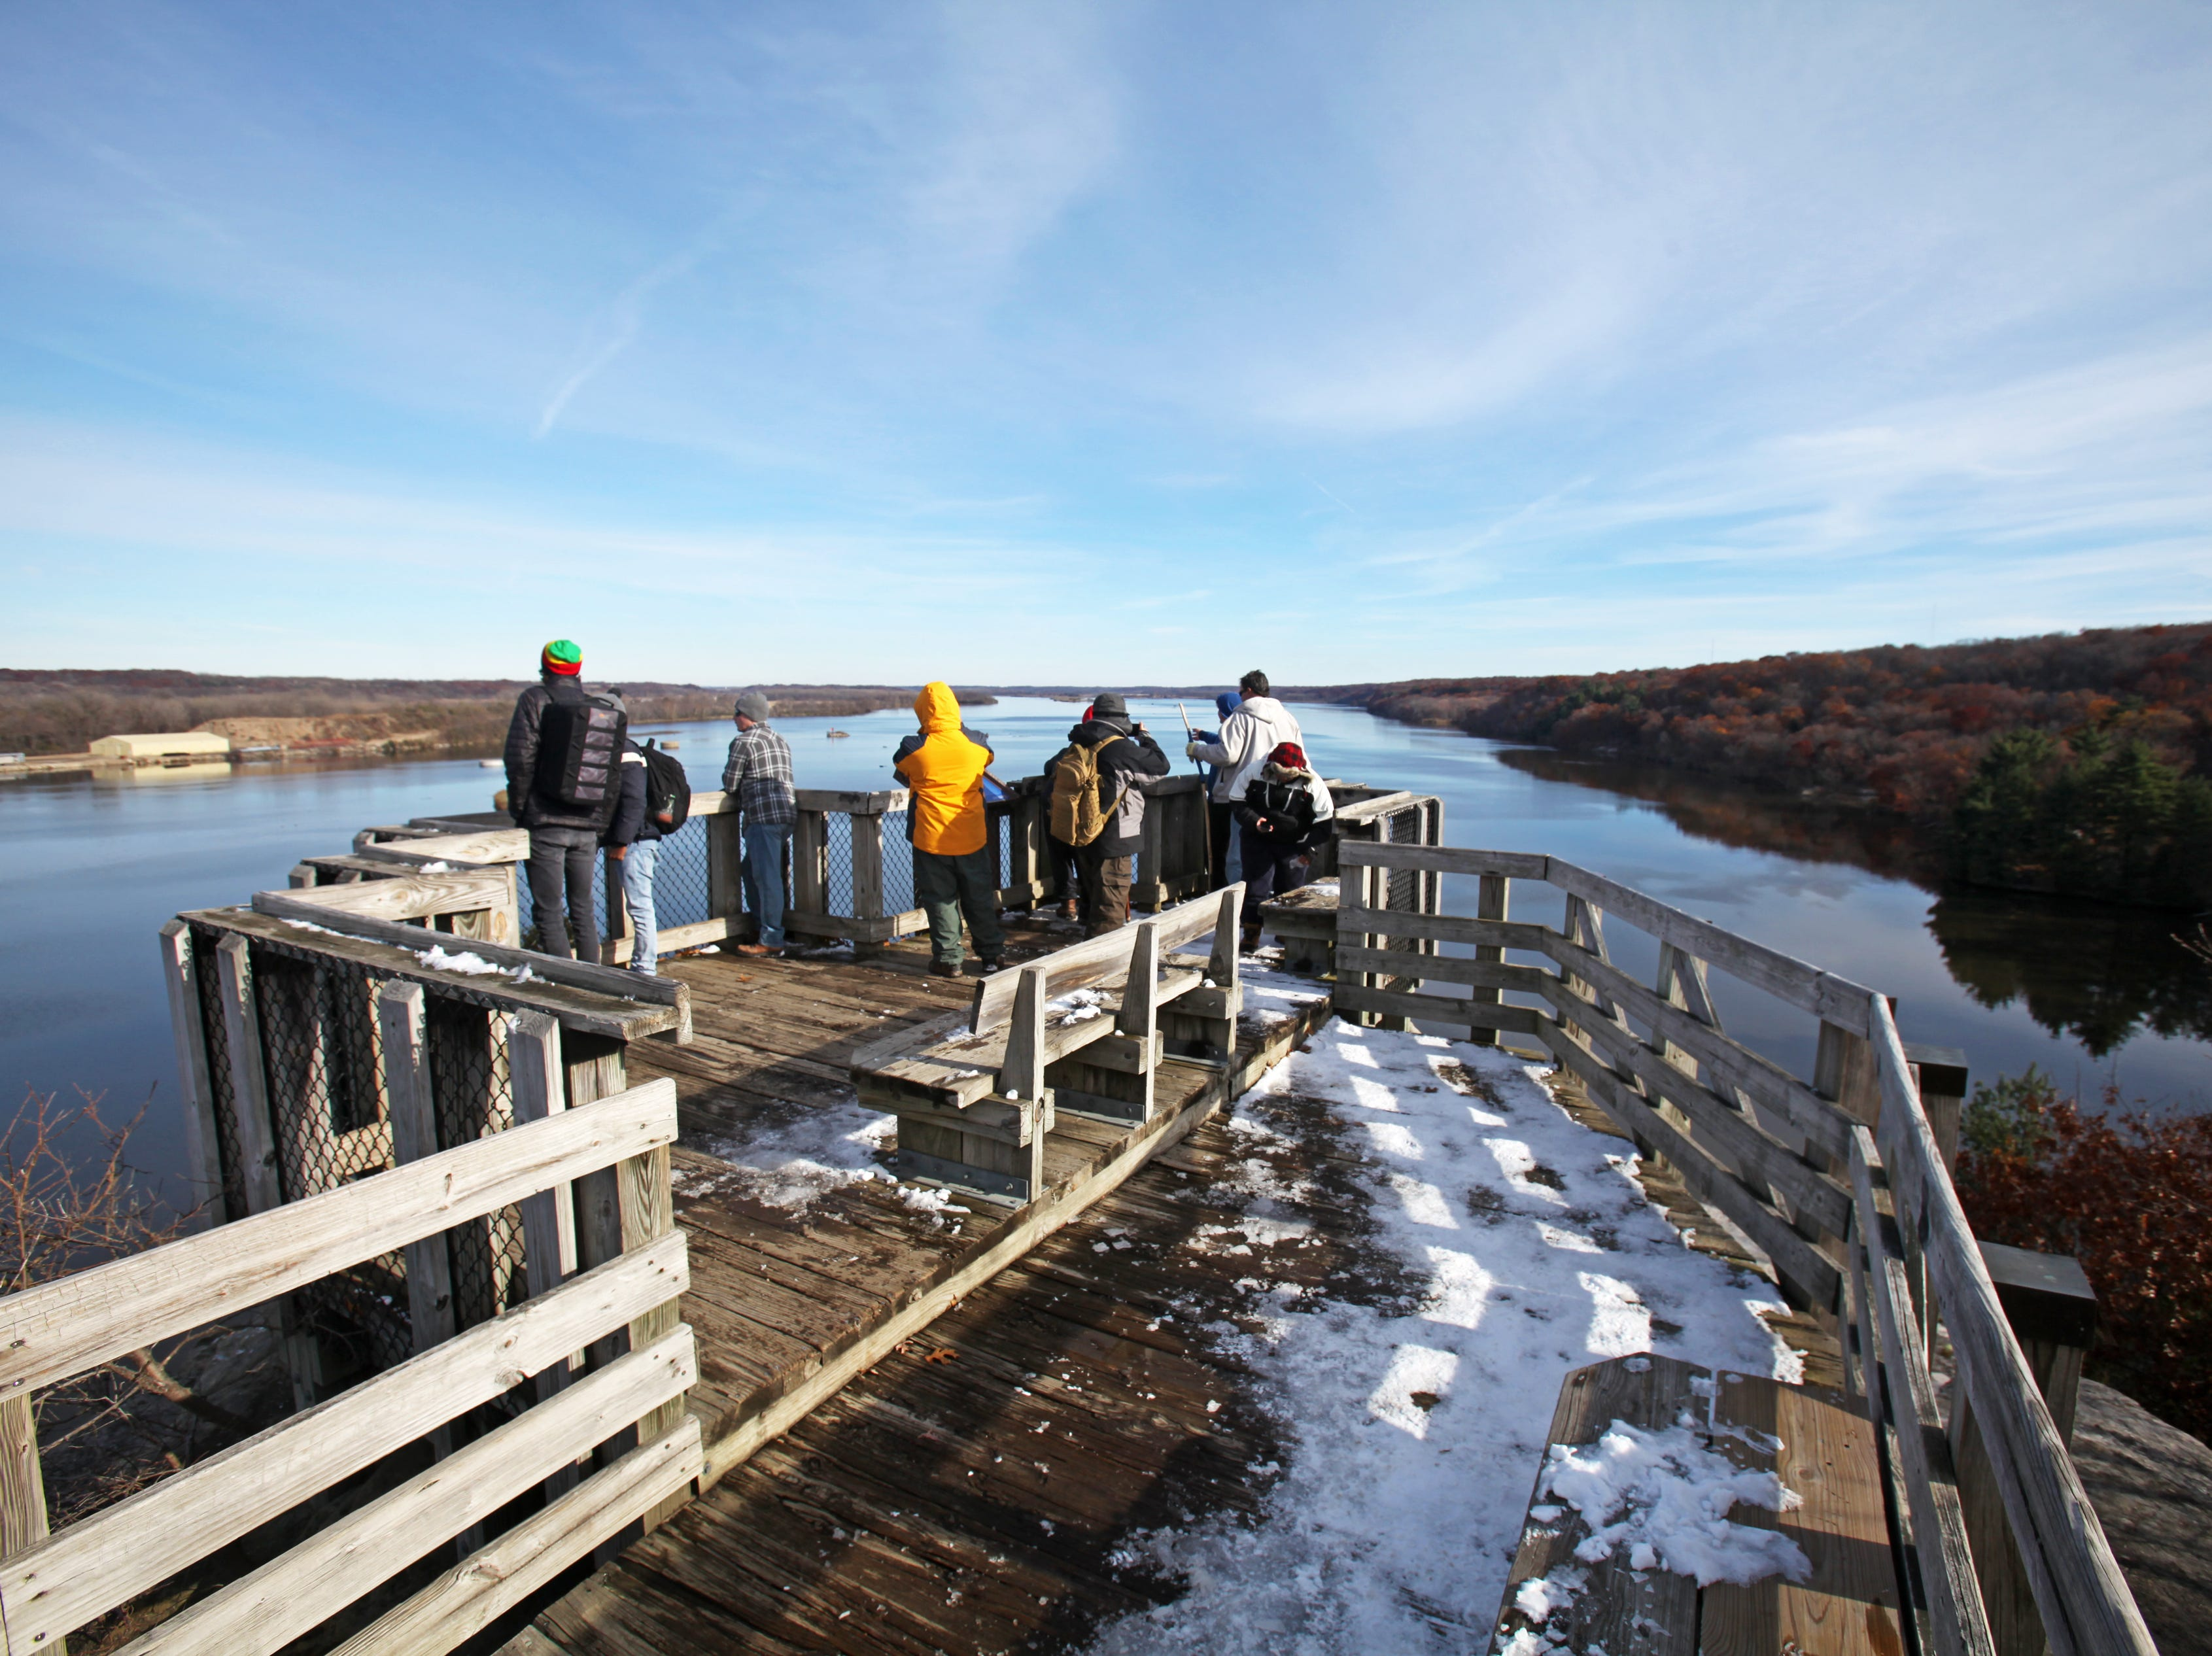 In the winter, visitors to Starved Rock State Park might spot a bald eagle from the Eagle Cliff Overlook.